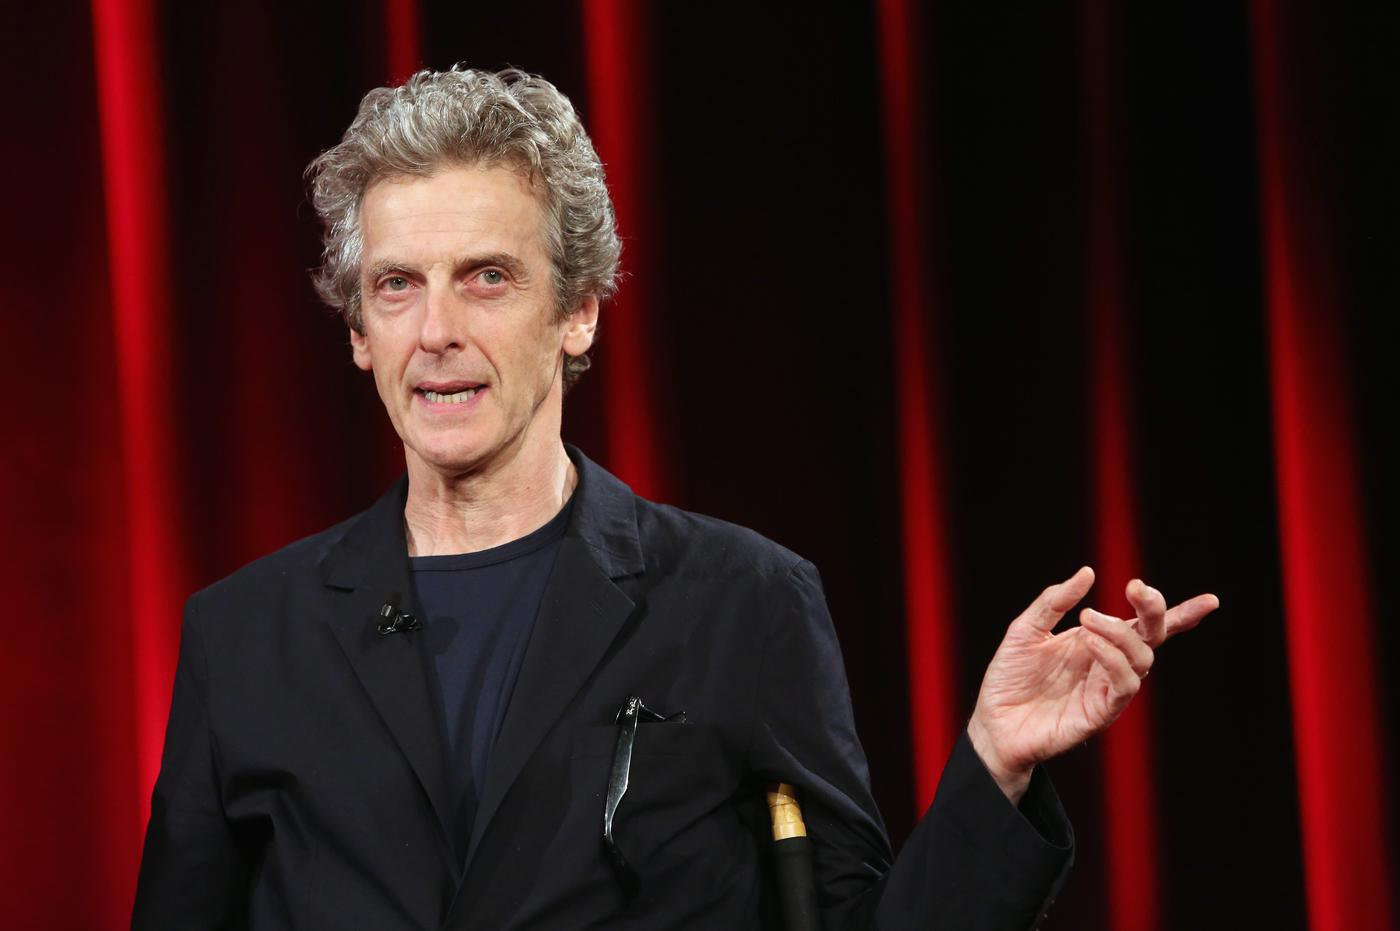 Doctor Who's Peter Capaldi tells Larry King that the BBC is 'seriously under threat'